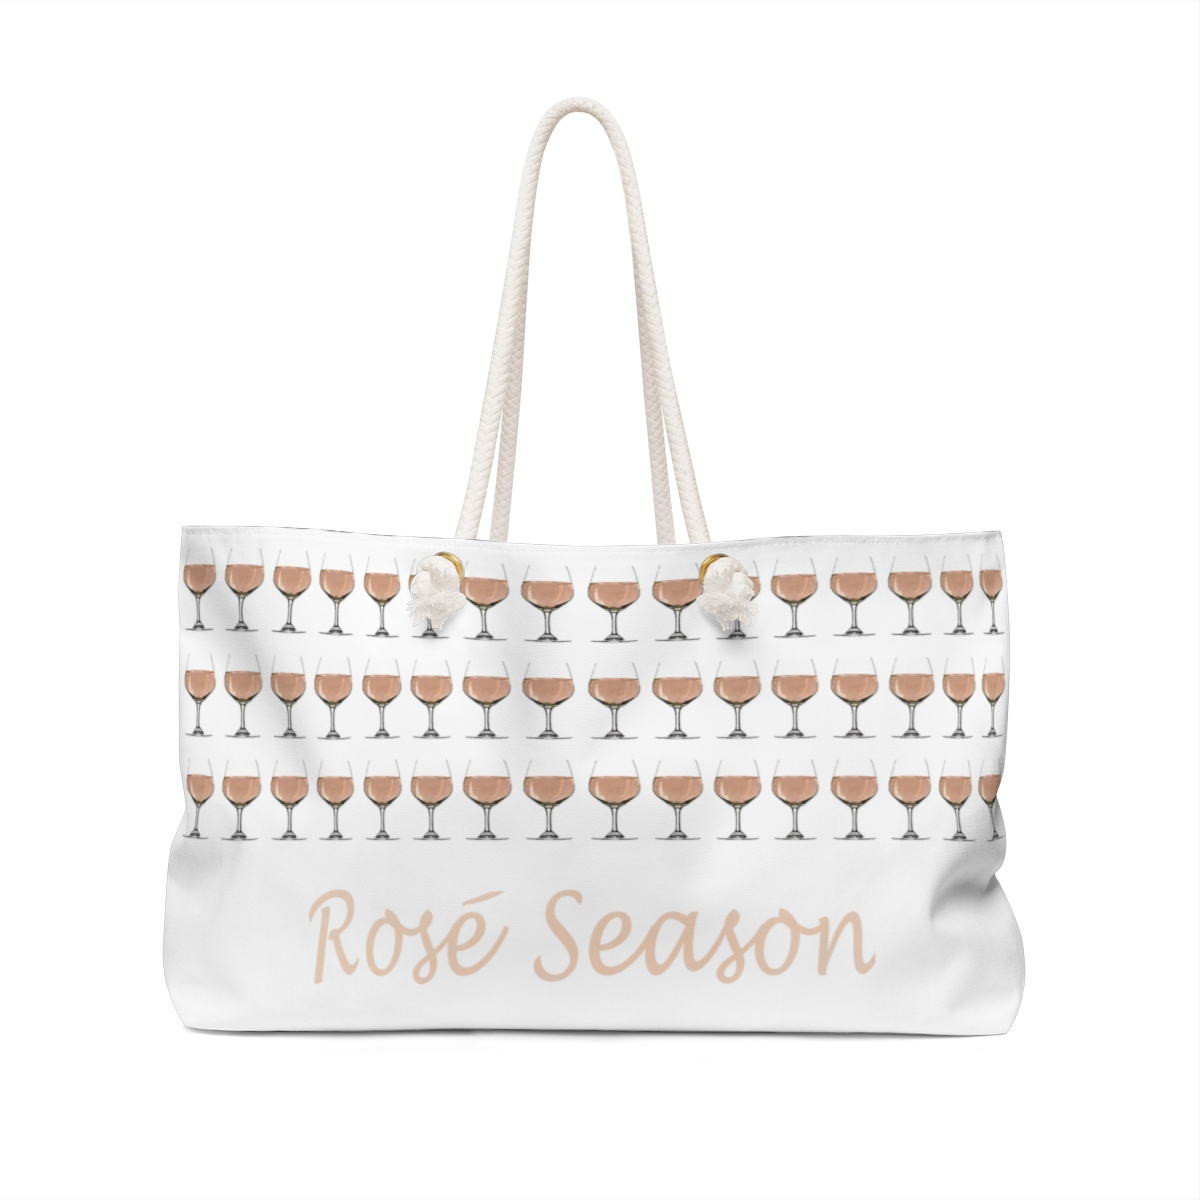 rose season tote bag.jpeg